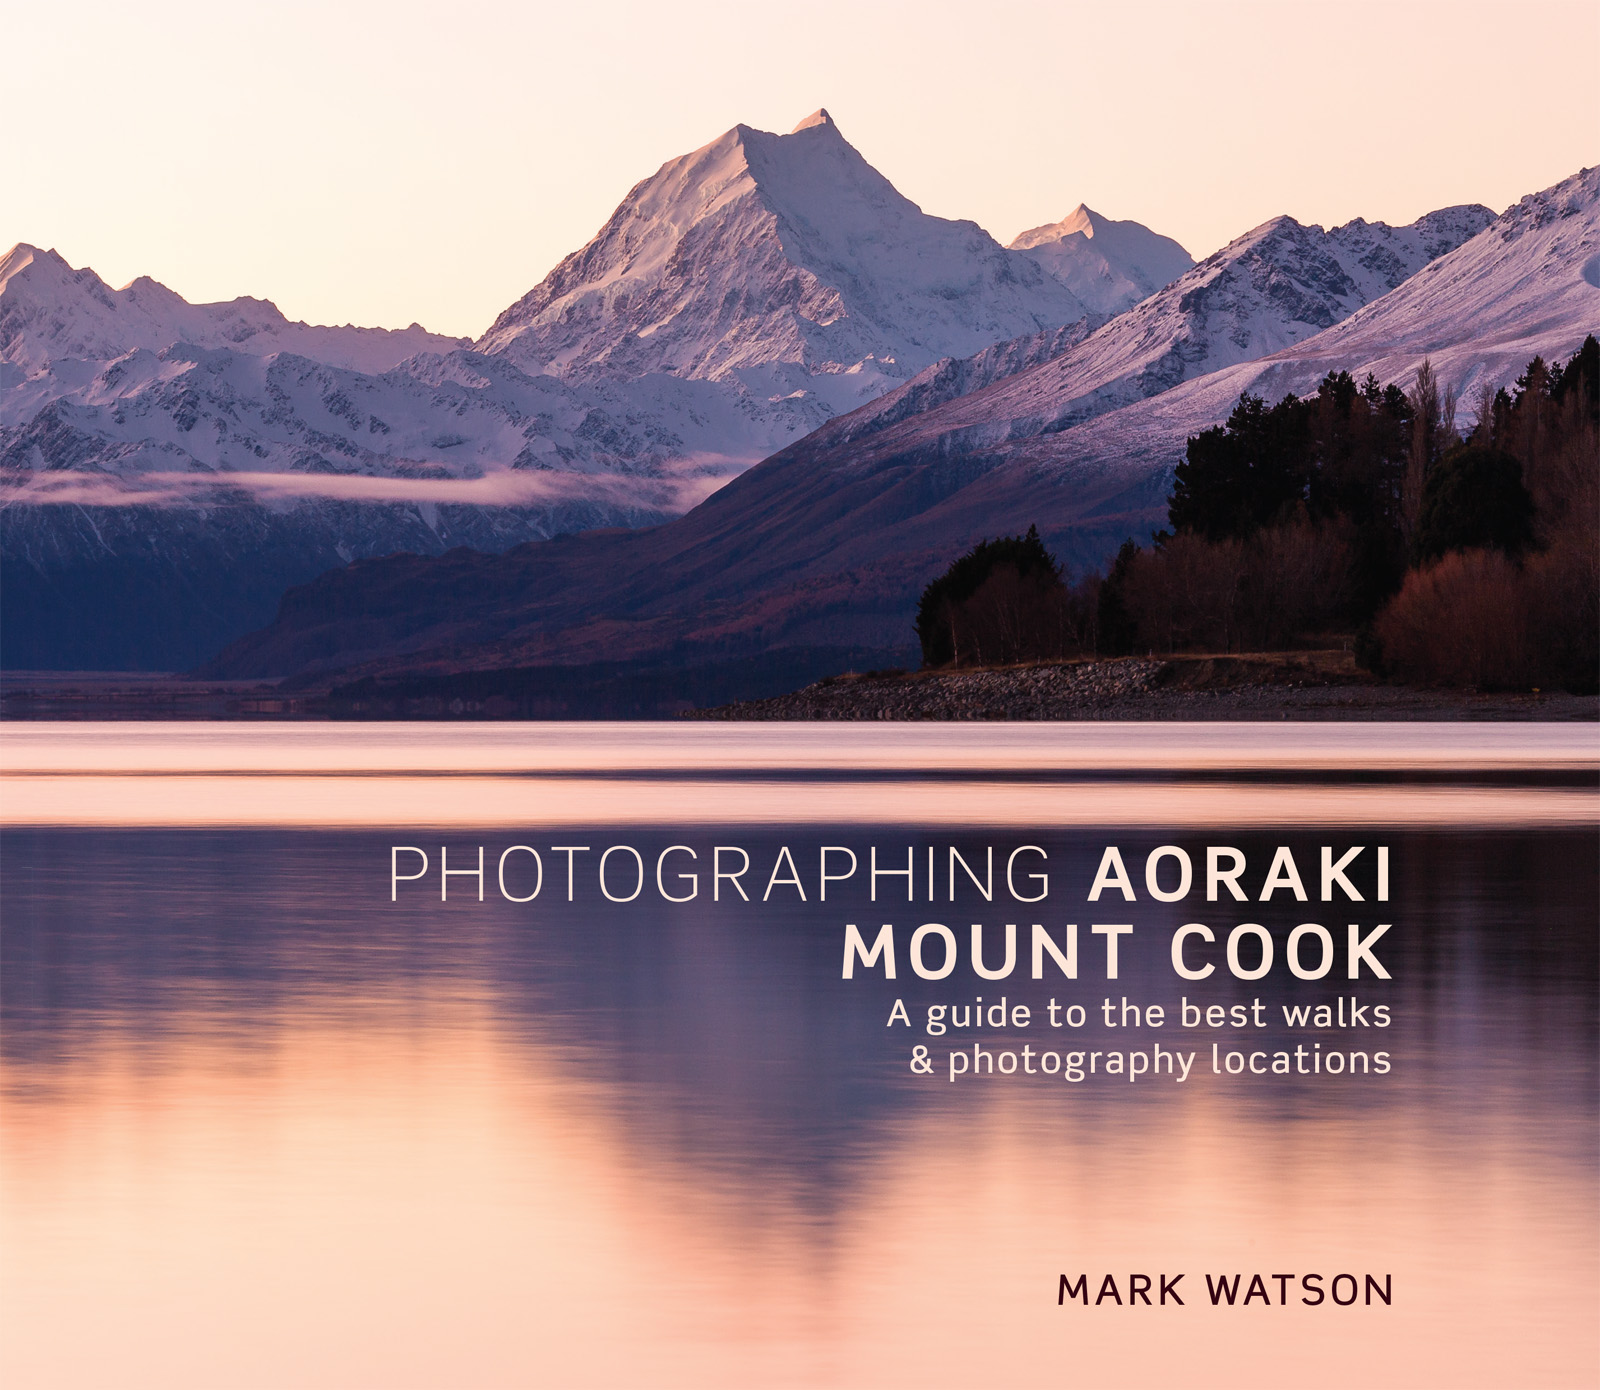 Photography guidebook